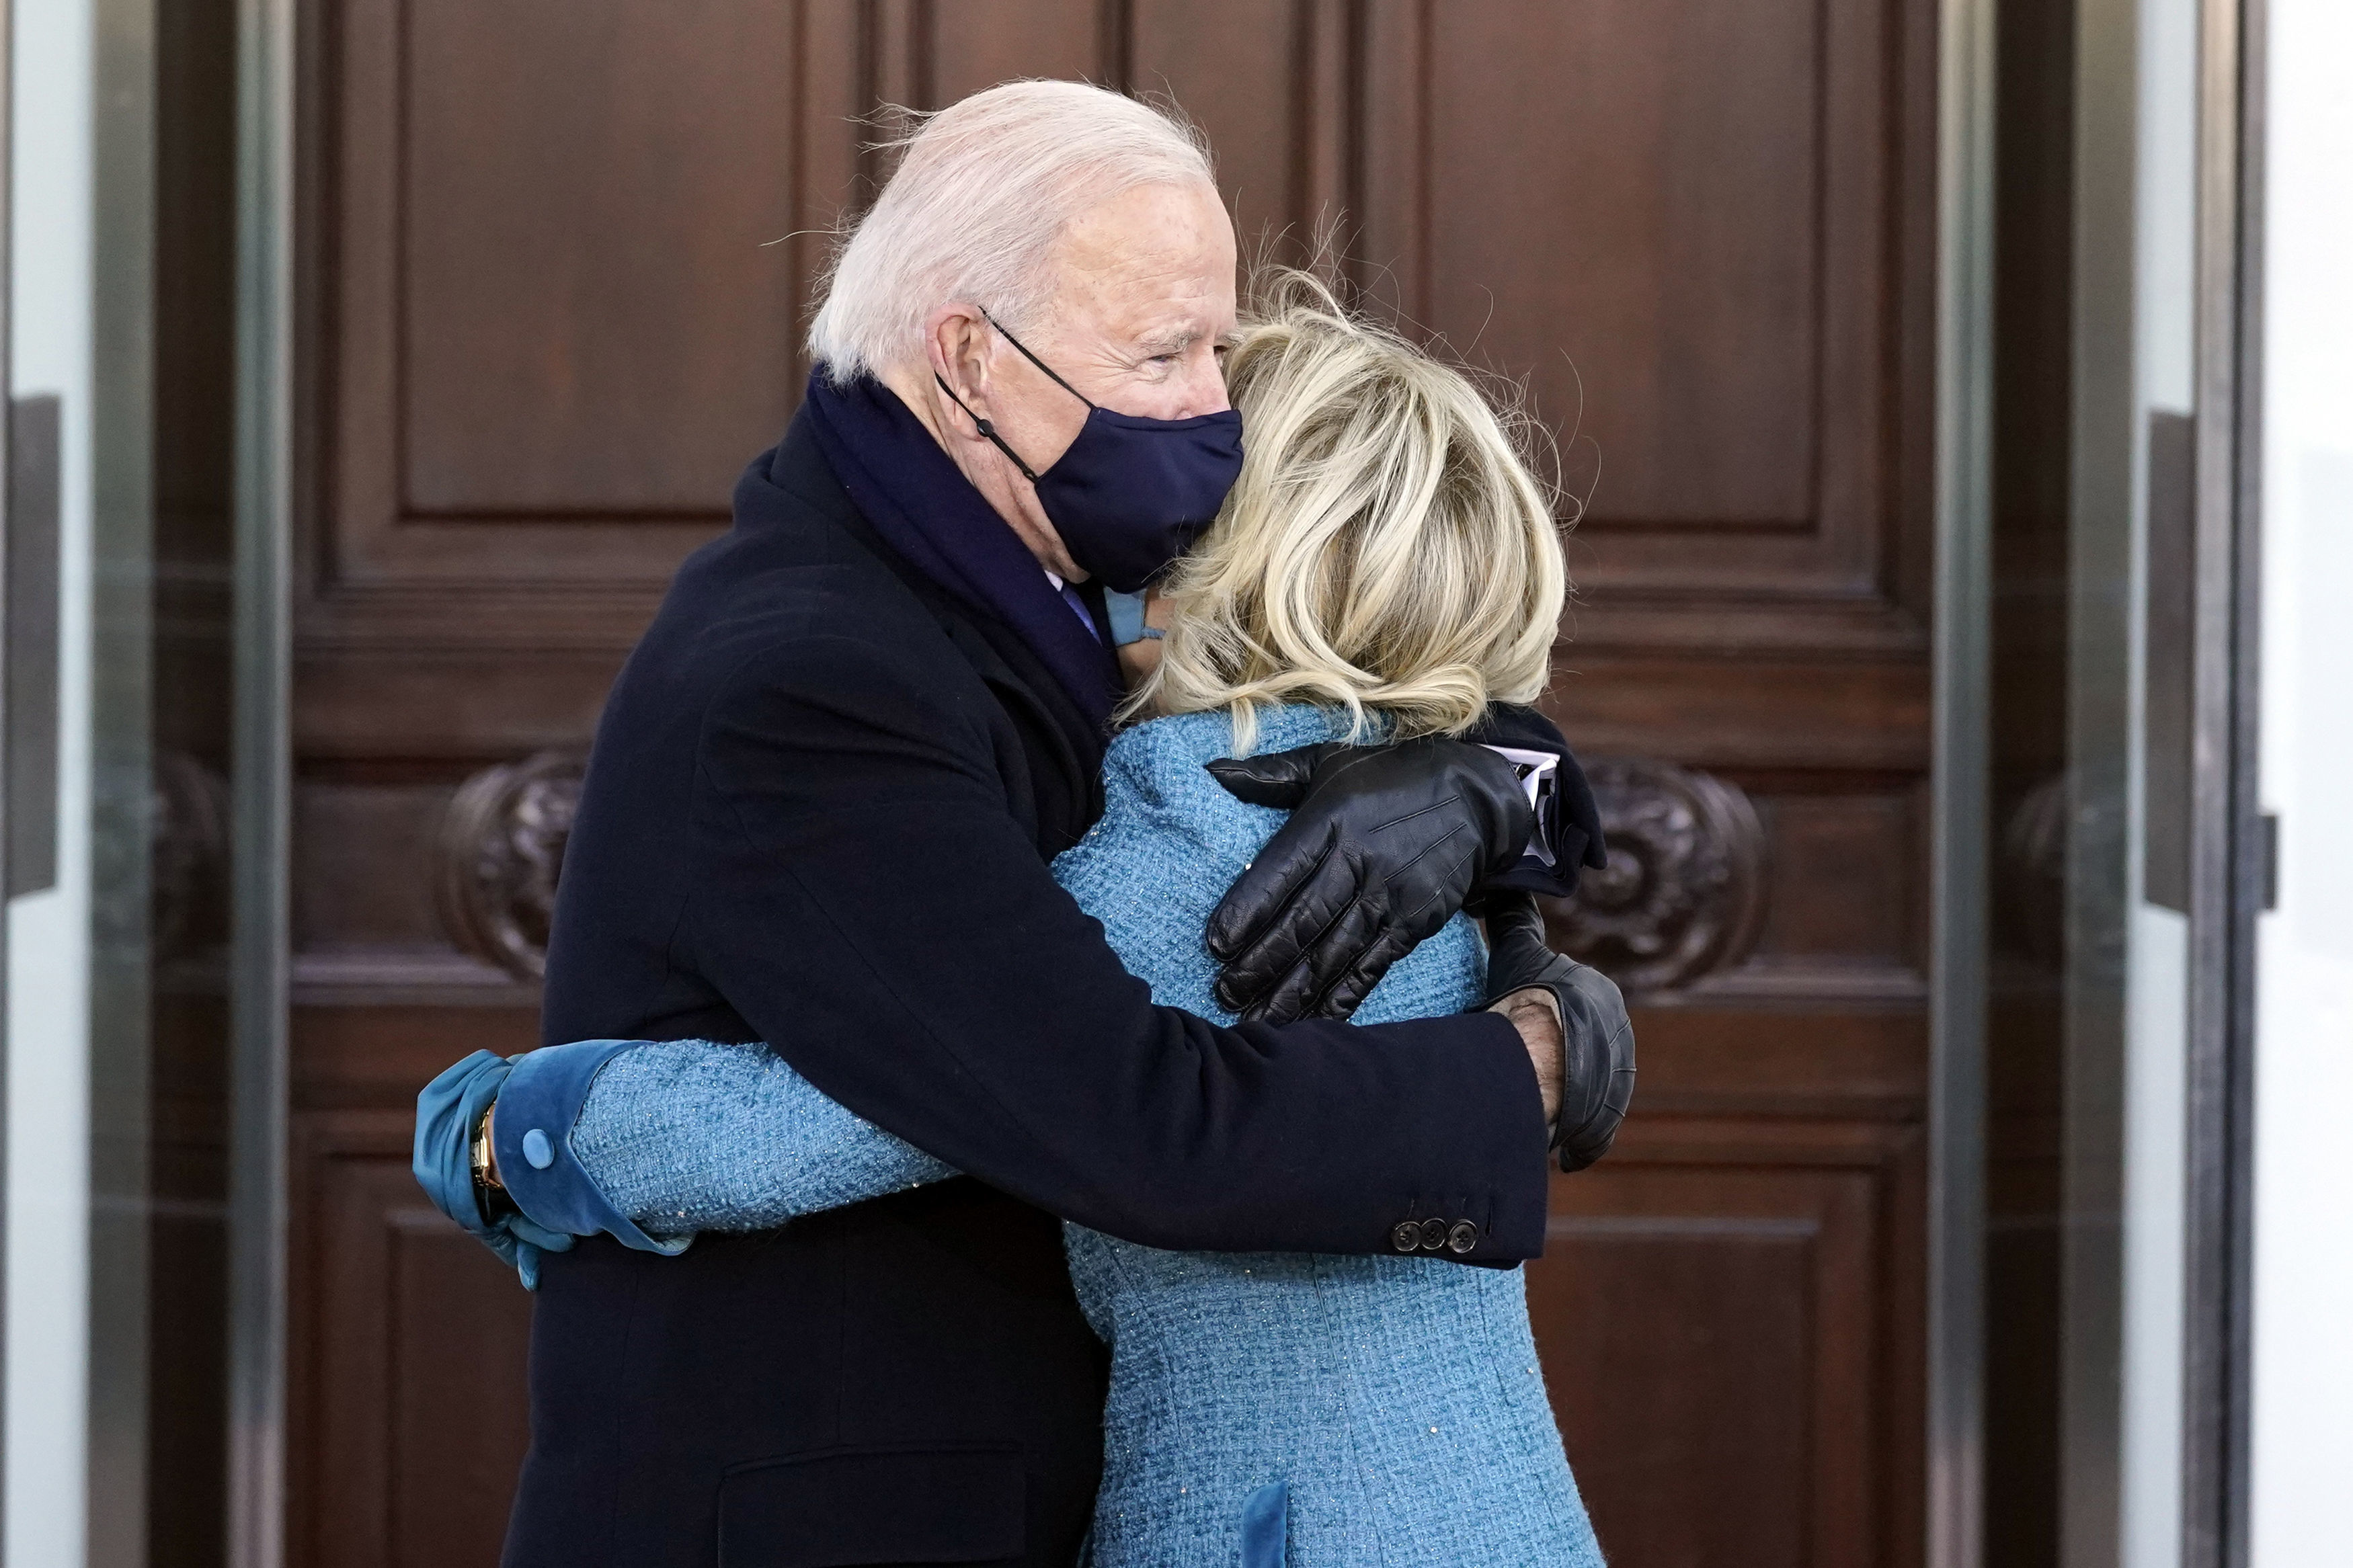 The Bidens hug outside the White House